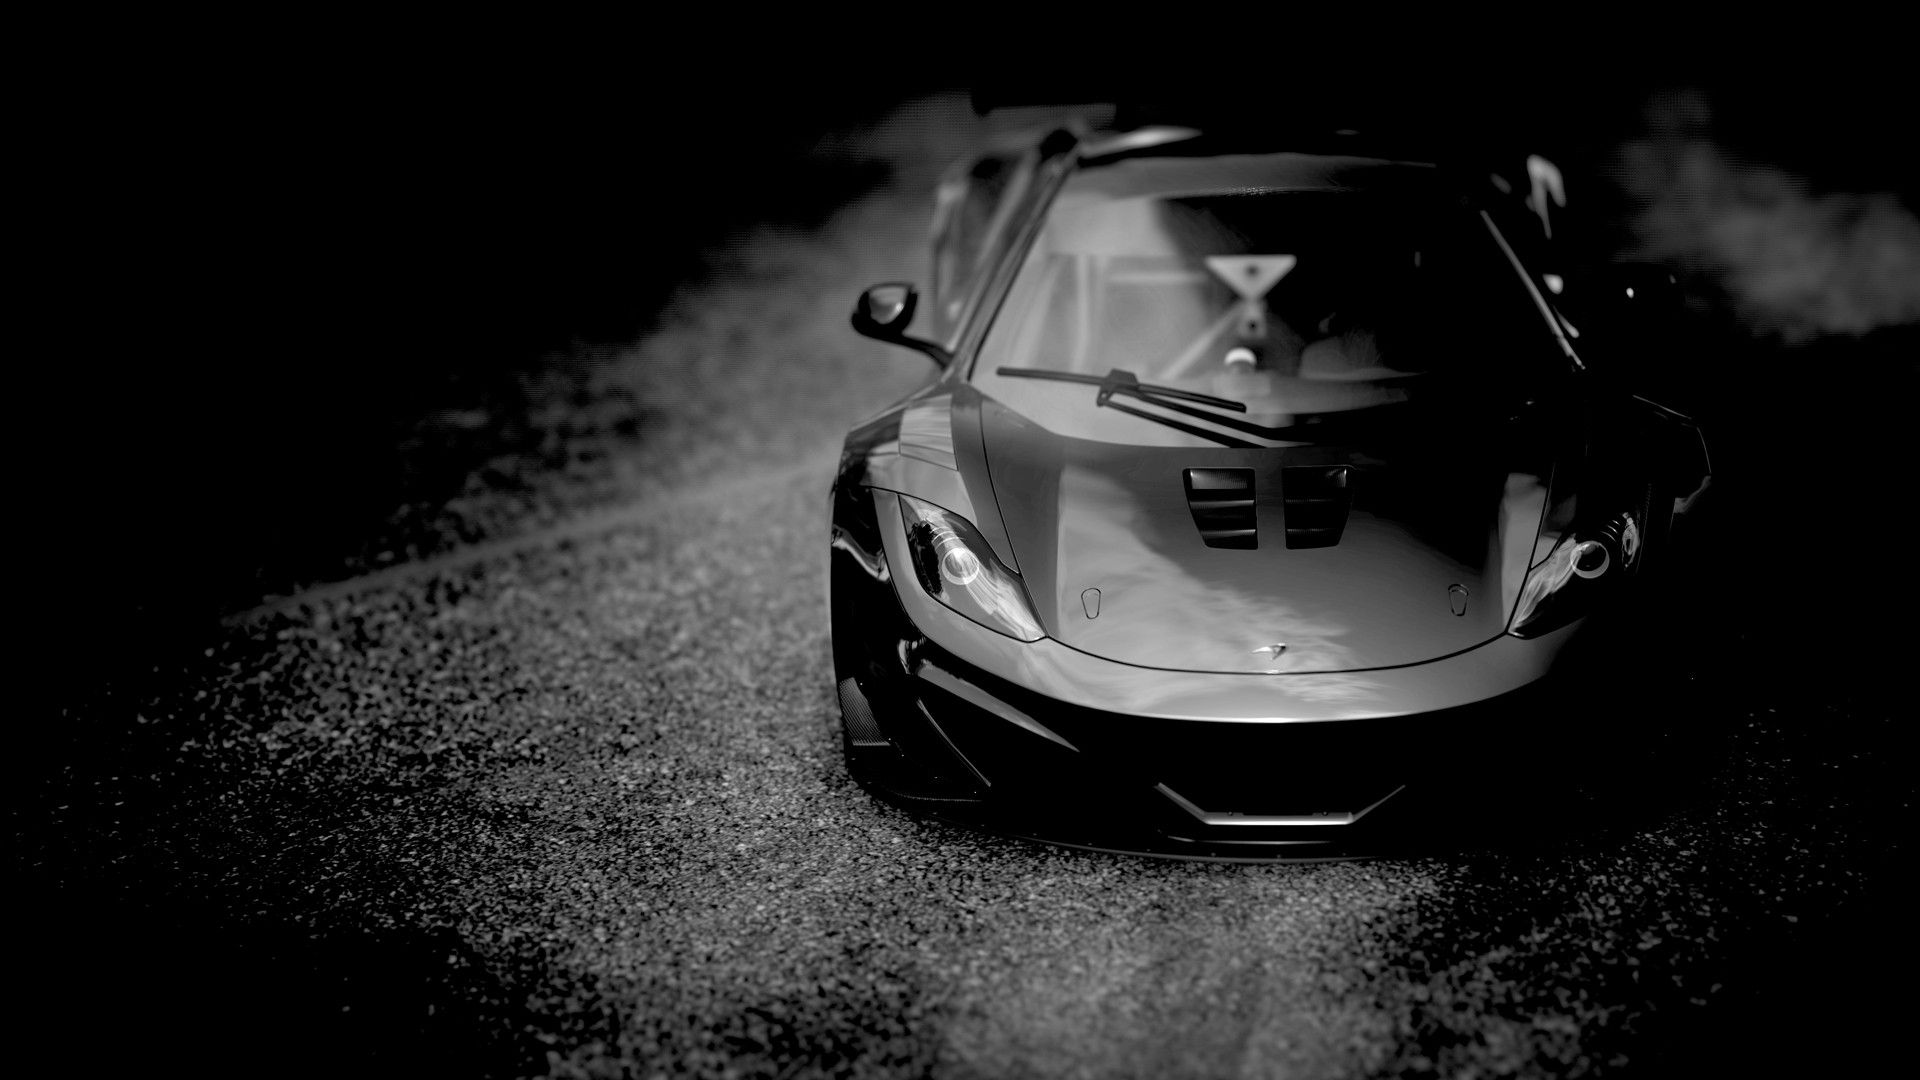 Black And White Cars Grayscale Monochrome Mclaren Mp4 12c Mp4 12c